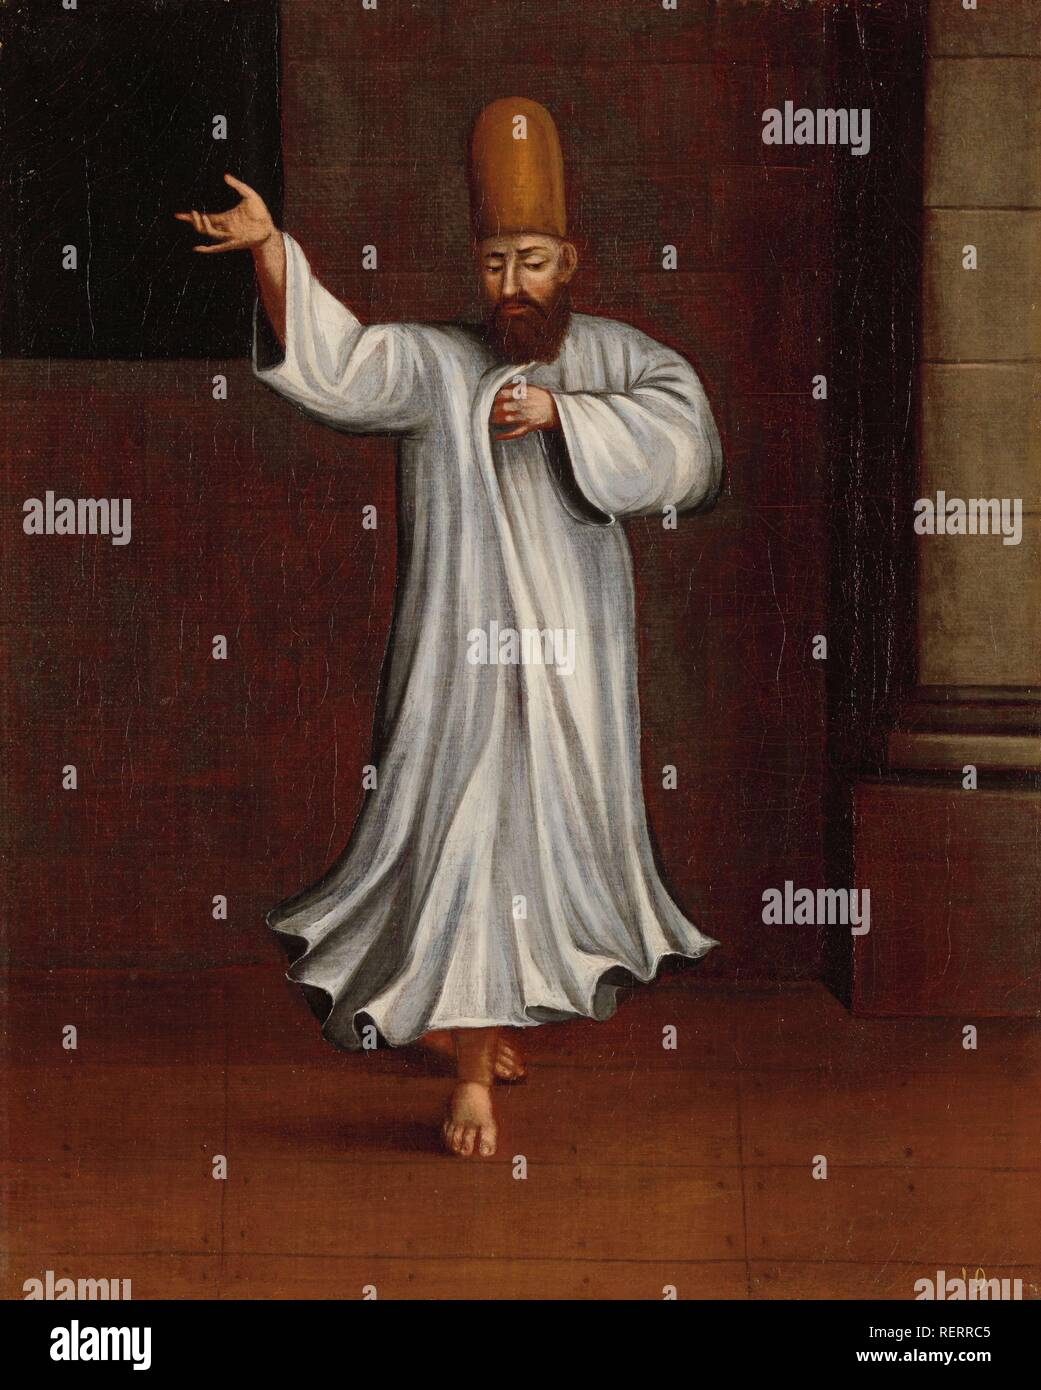 Dervish. Dating: 1700 - 1737. Place: Istanbul. Measurements: h 39.5 cm × w 31.5 cm. Museum: Rijksmuseum, Amsterdam. Author: Jean Baptiste Vanmour (workshop of). - Stock Image